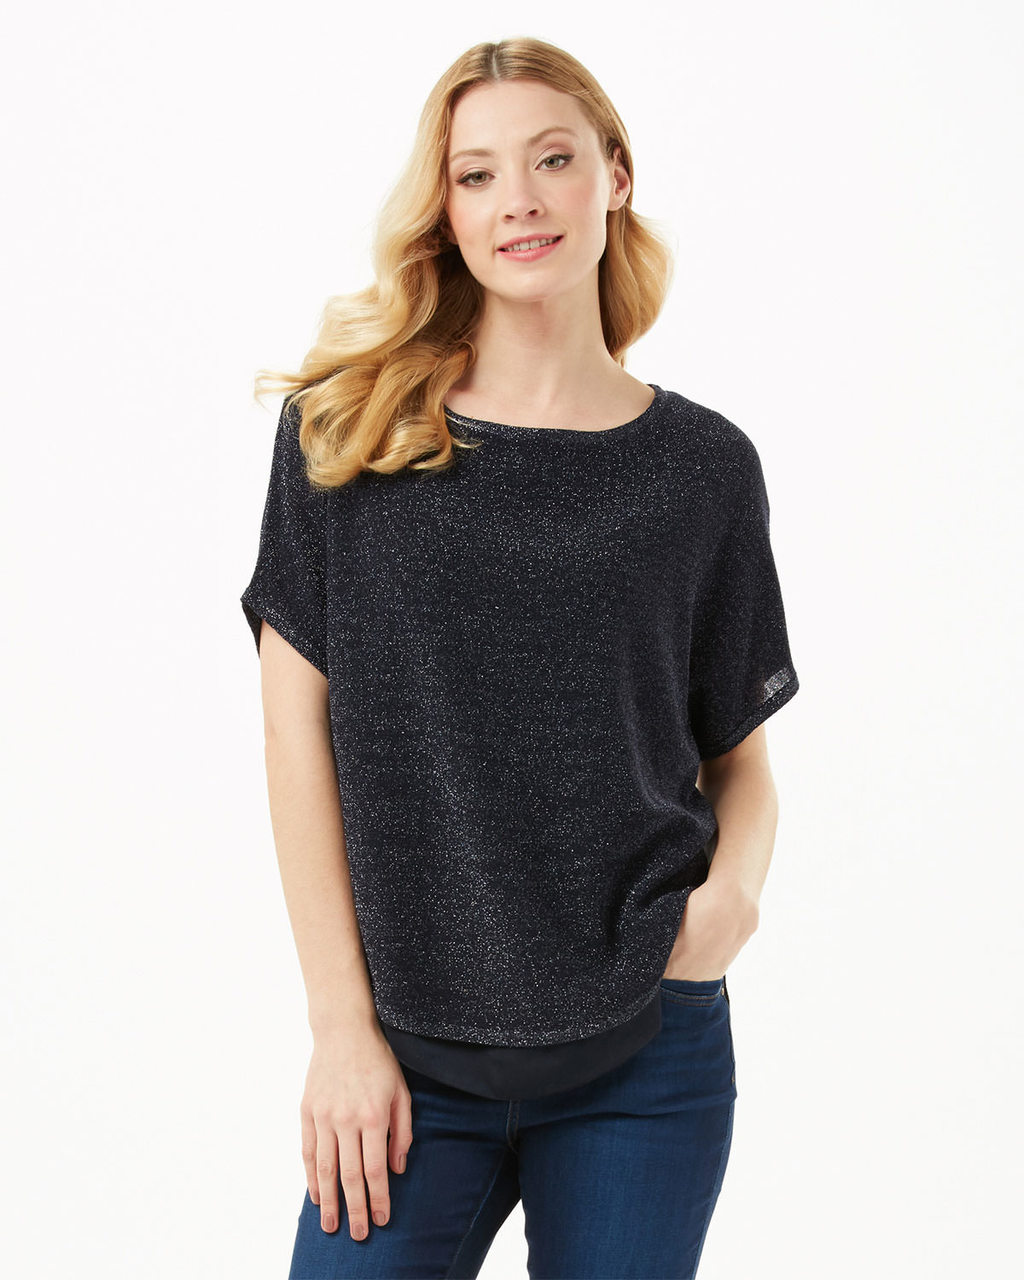 Tape Yarn Macey Jumper - pattern: plain; style: standard; predominant colour: charcoal; occasions: casual; length: standard; fibres: cotton - mix; fit: loose; neckline: crew; sleeve length: short sleeve; sleeve style: standard; texture group: knits/crochet; pattern type: fabric; season: s/s 2016; wardrobe: basic